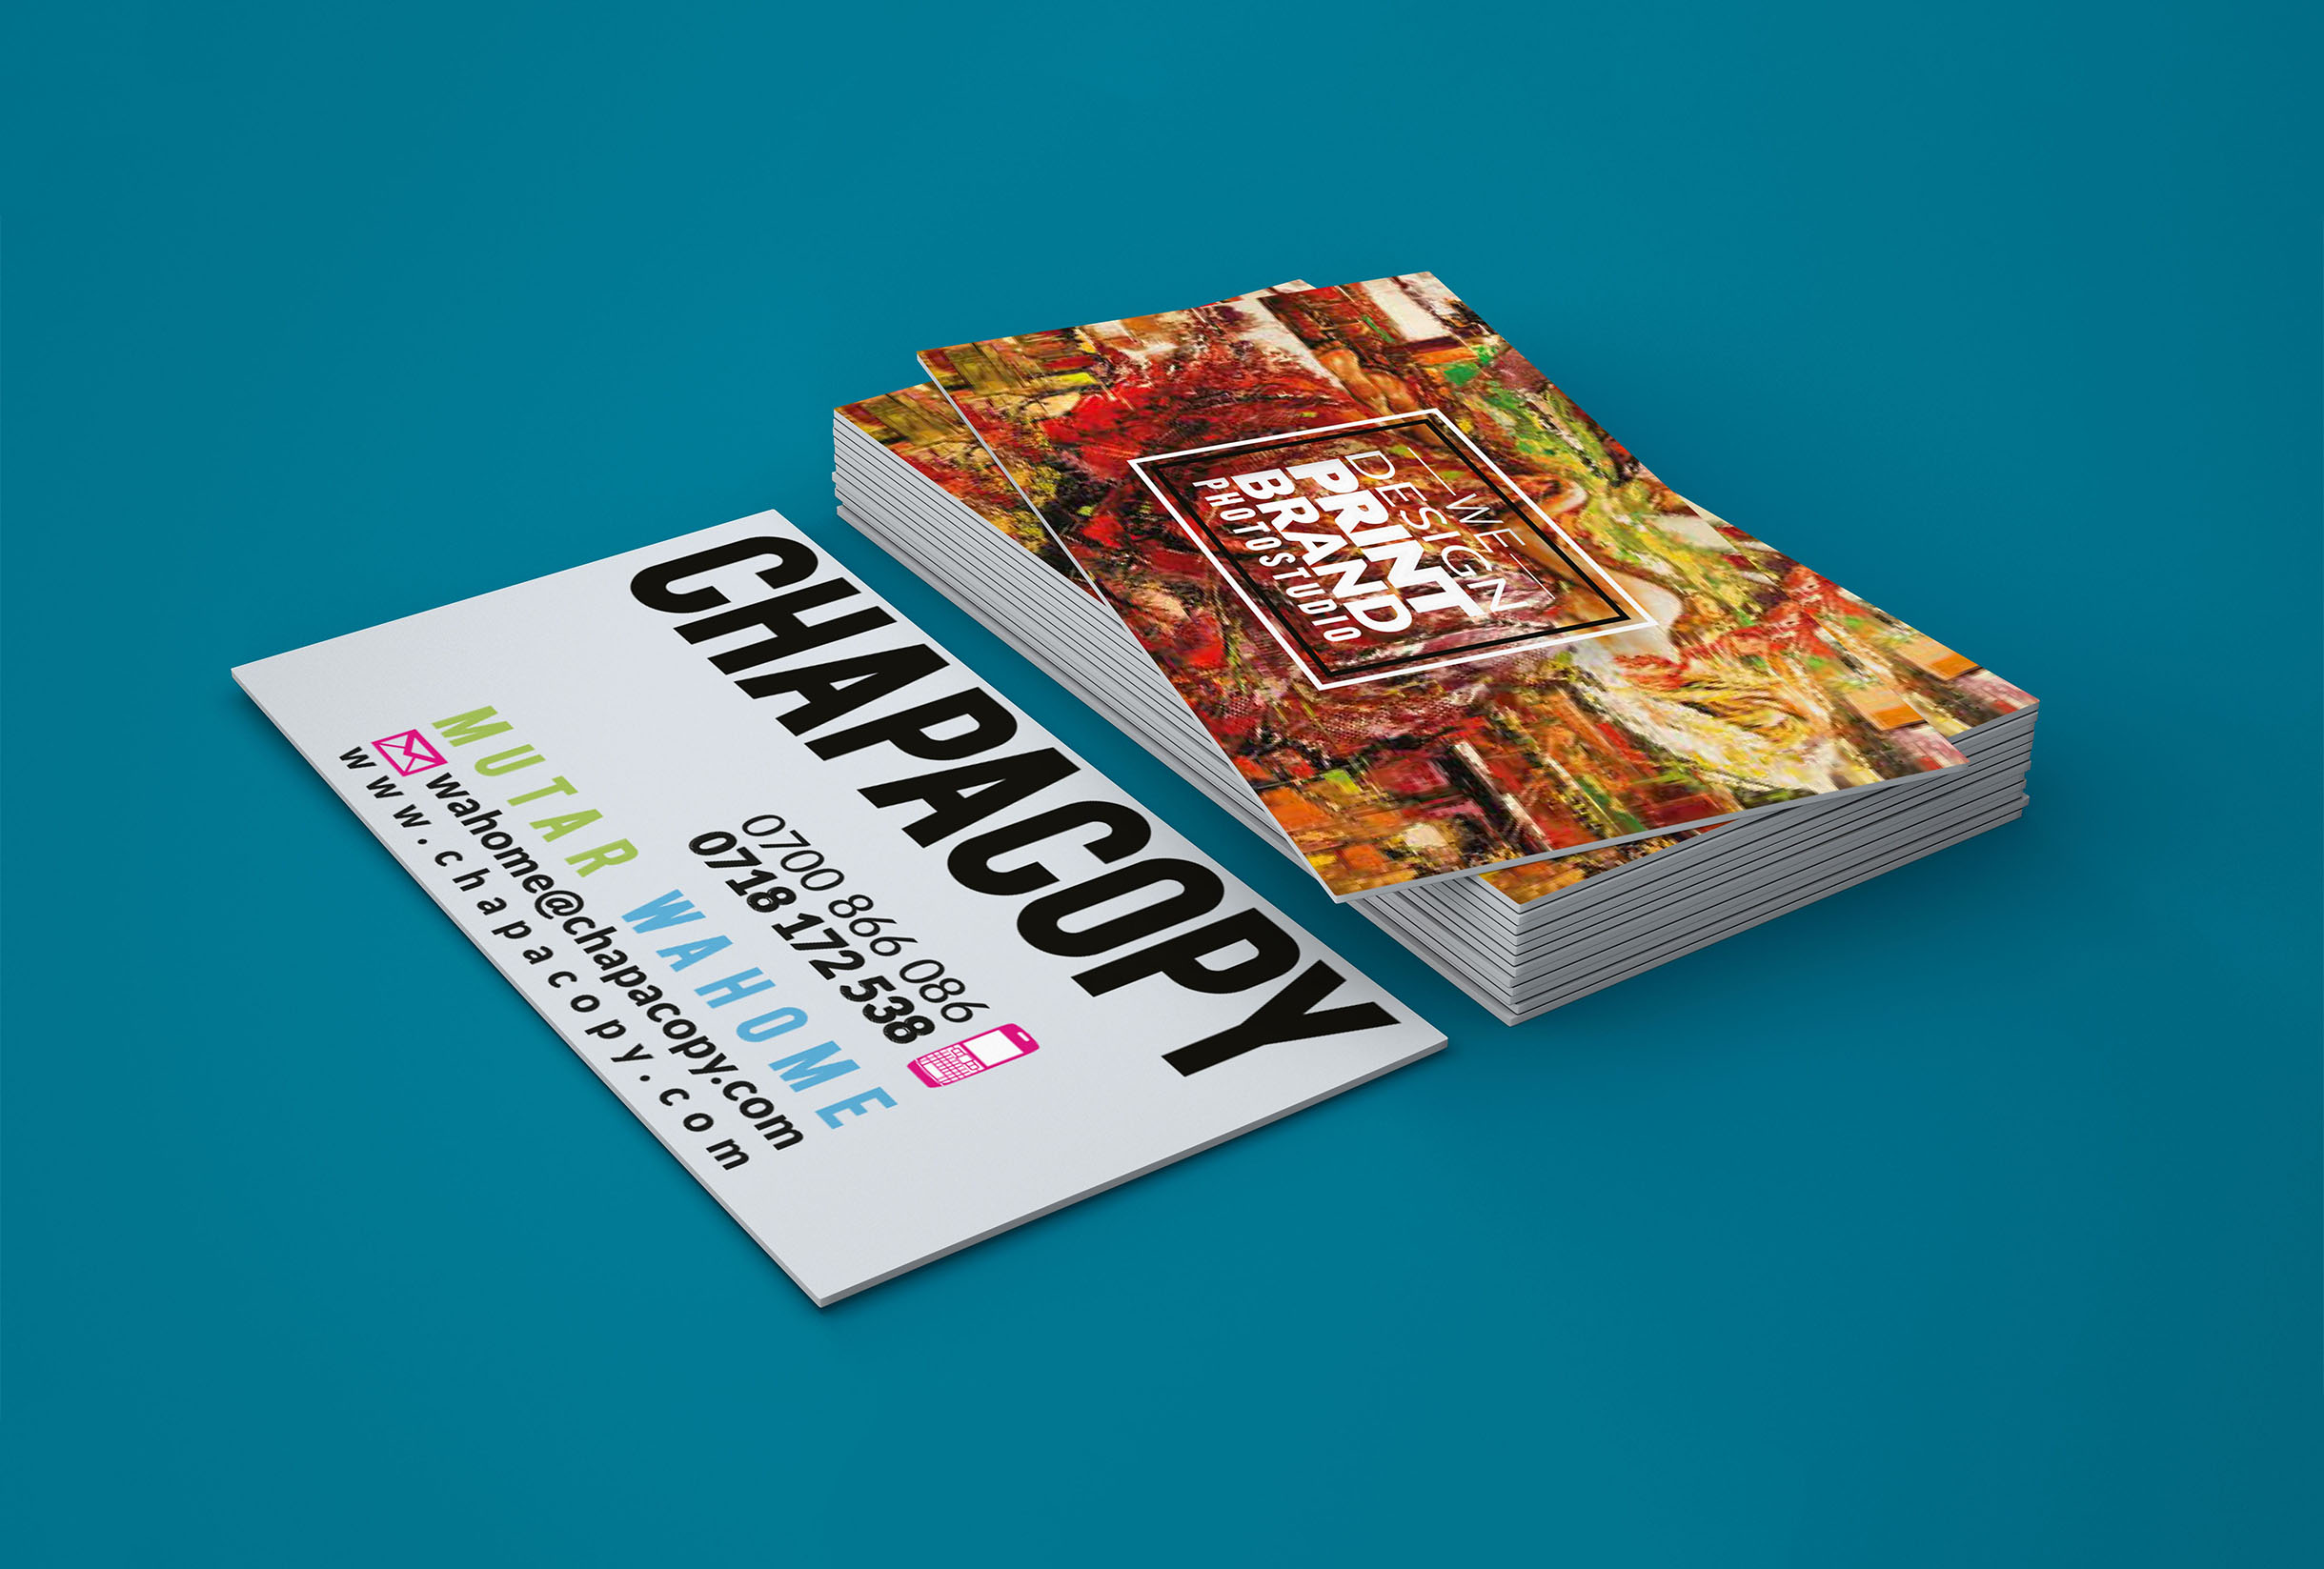 CHAPACOPY | Design, Print, Brand, Photography in Kenya